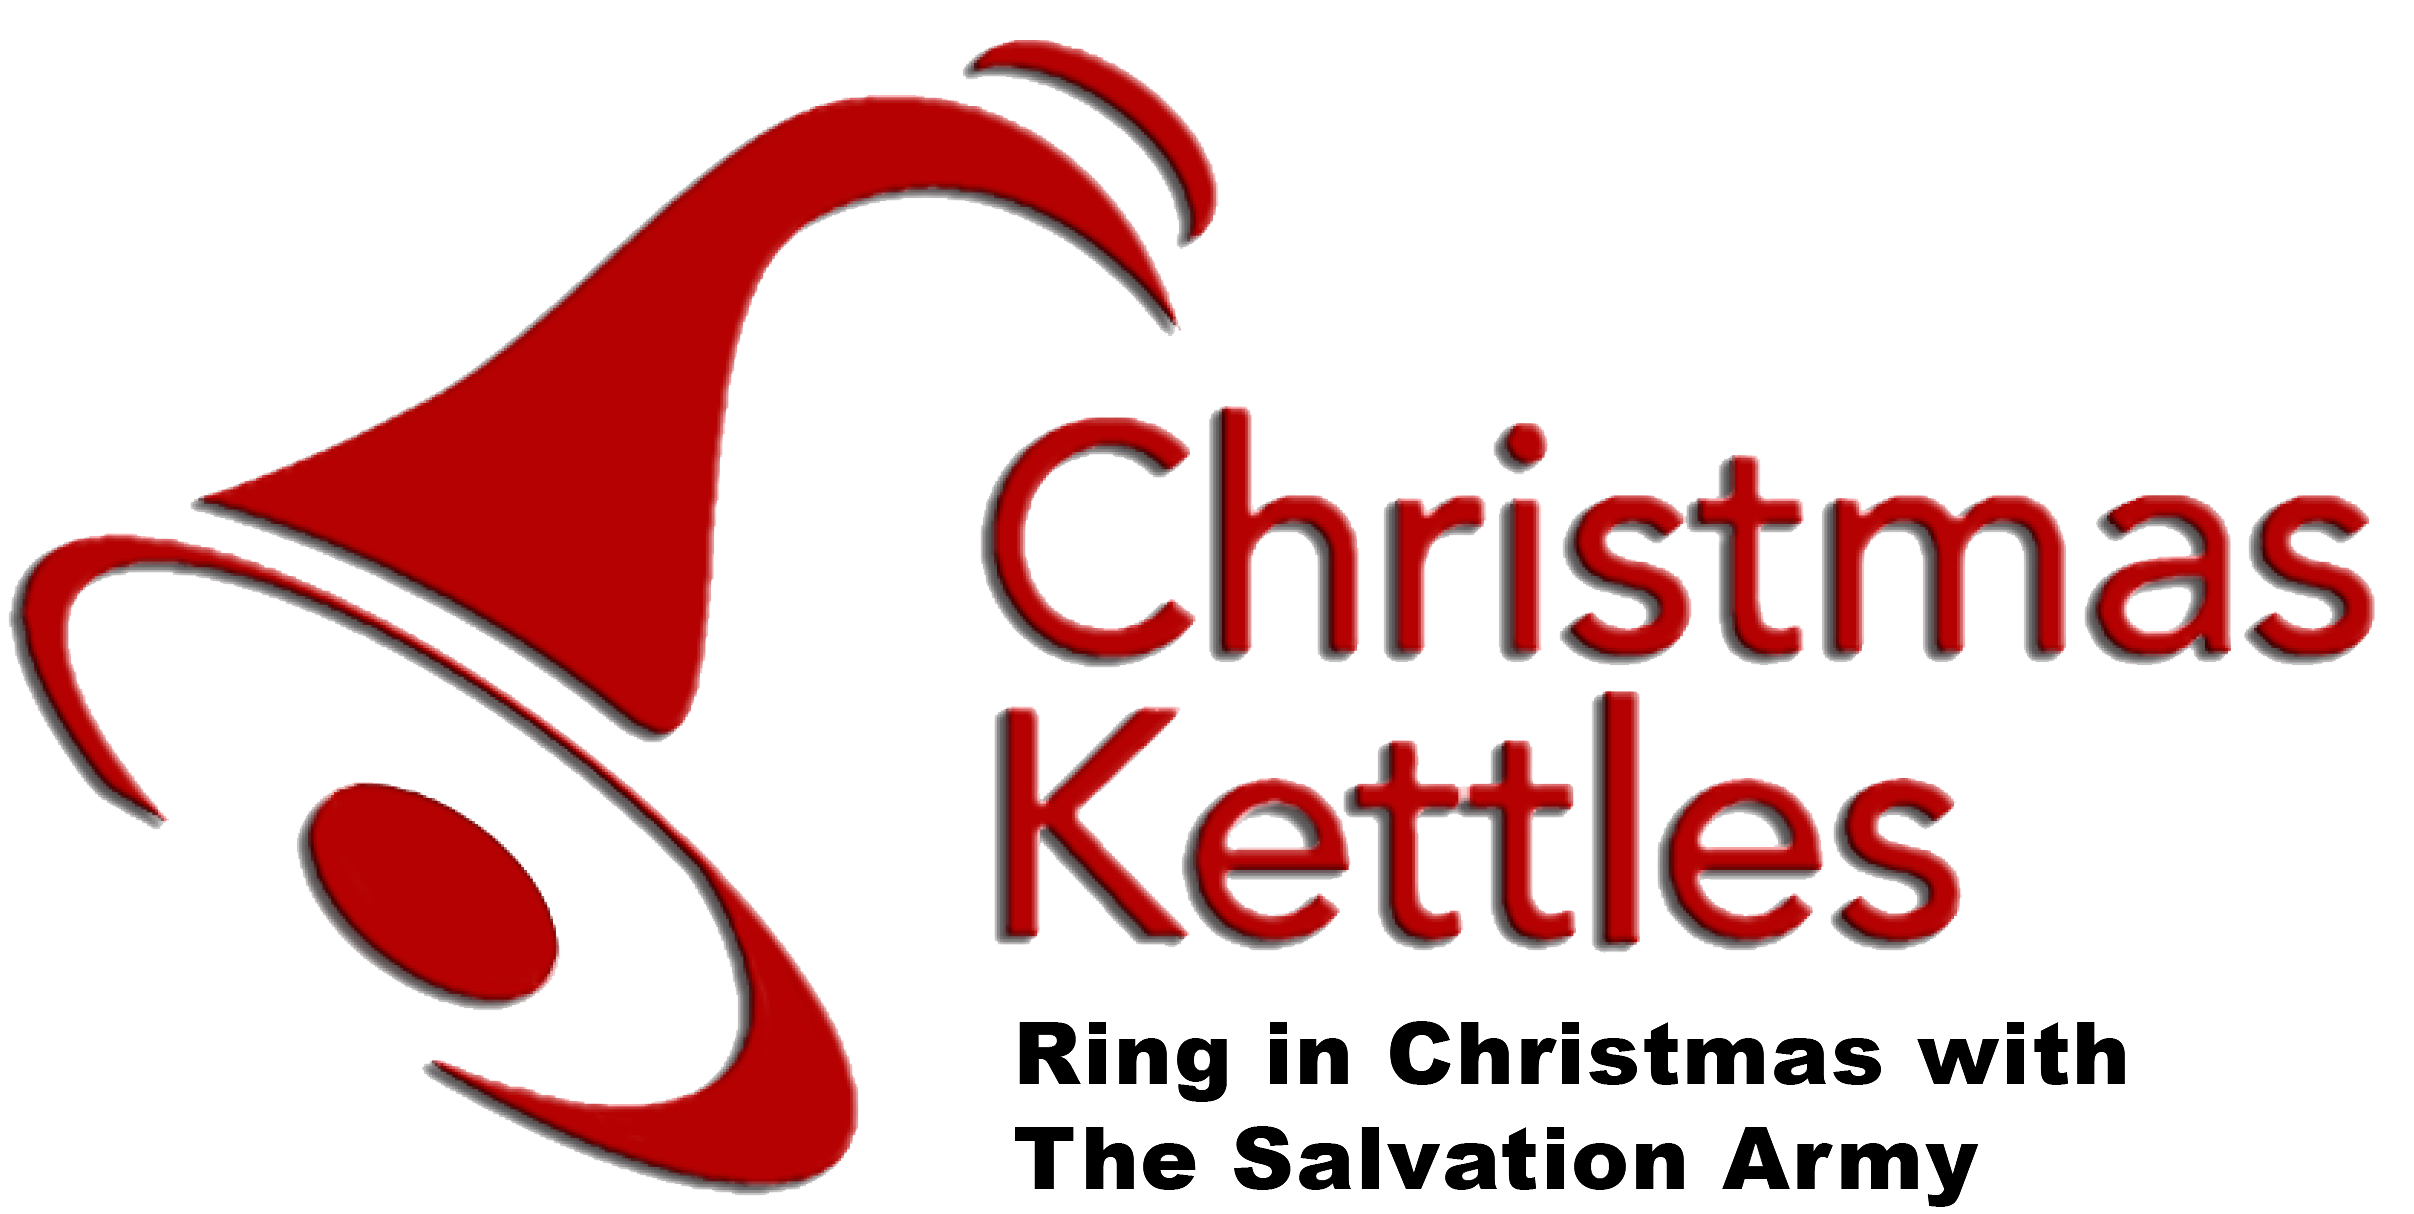 christmas kettles and salvation army png logo #5161